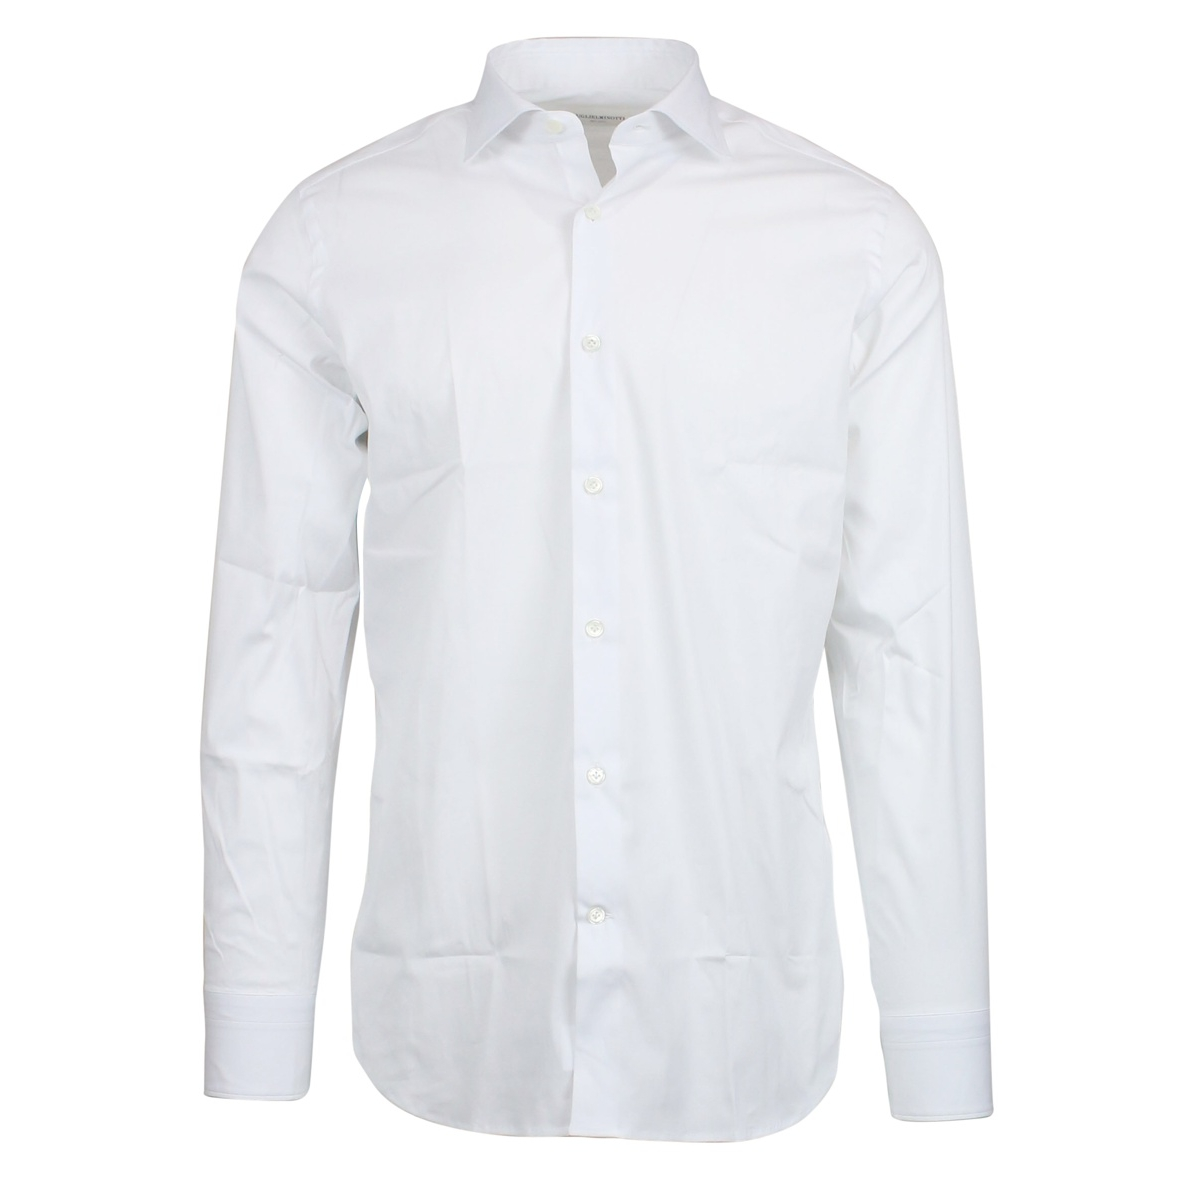 Custom-fit shirt with French collar White GUGLIELMINOTTI